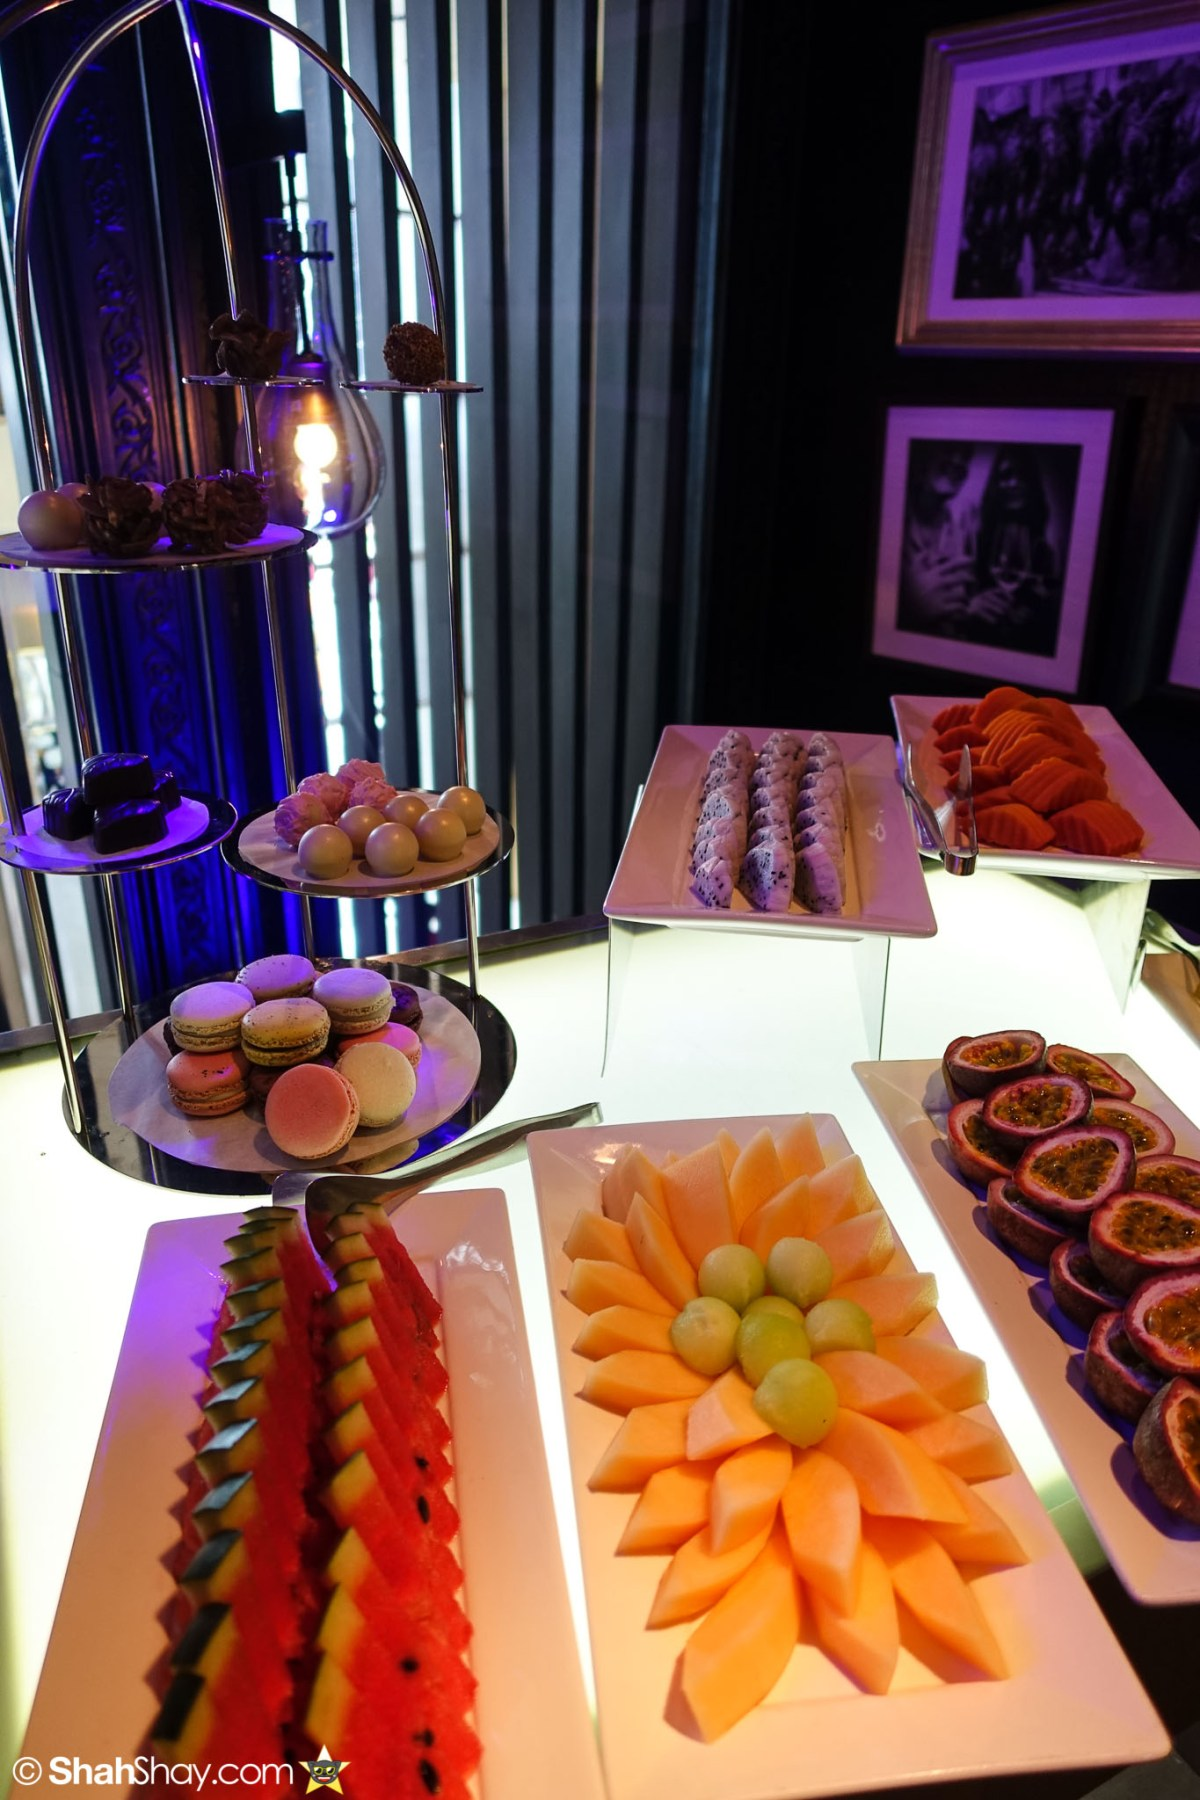 Sunday Brunch Bangkok - Fabulous Brunch Buffet Spread at The District - Fruits